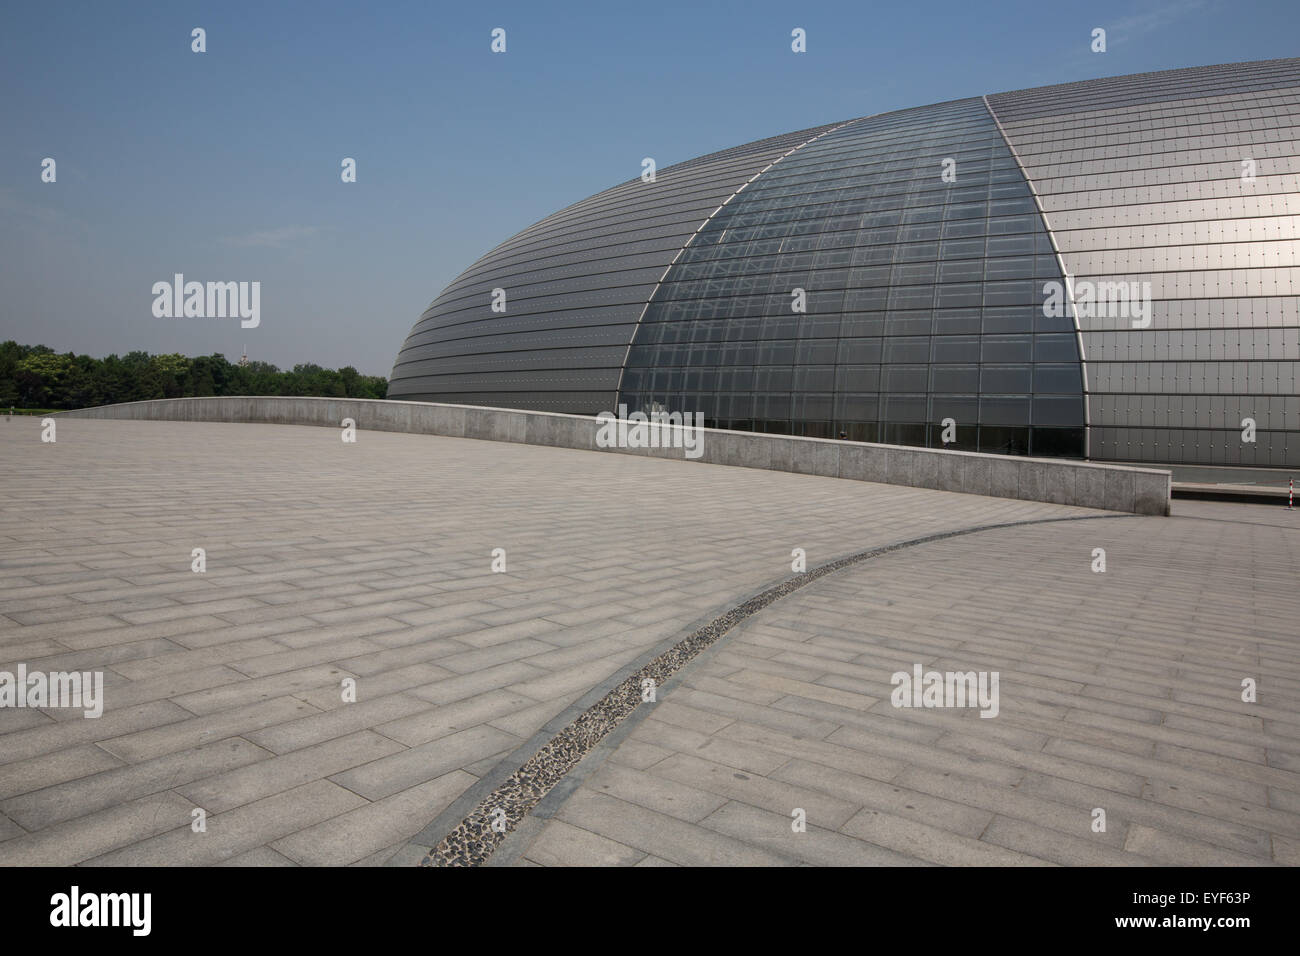 National Centre for Performing Arts, in Beijing, China - Stock Image